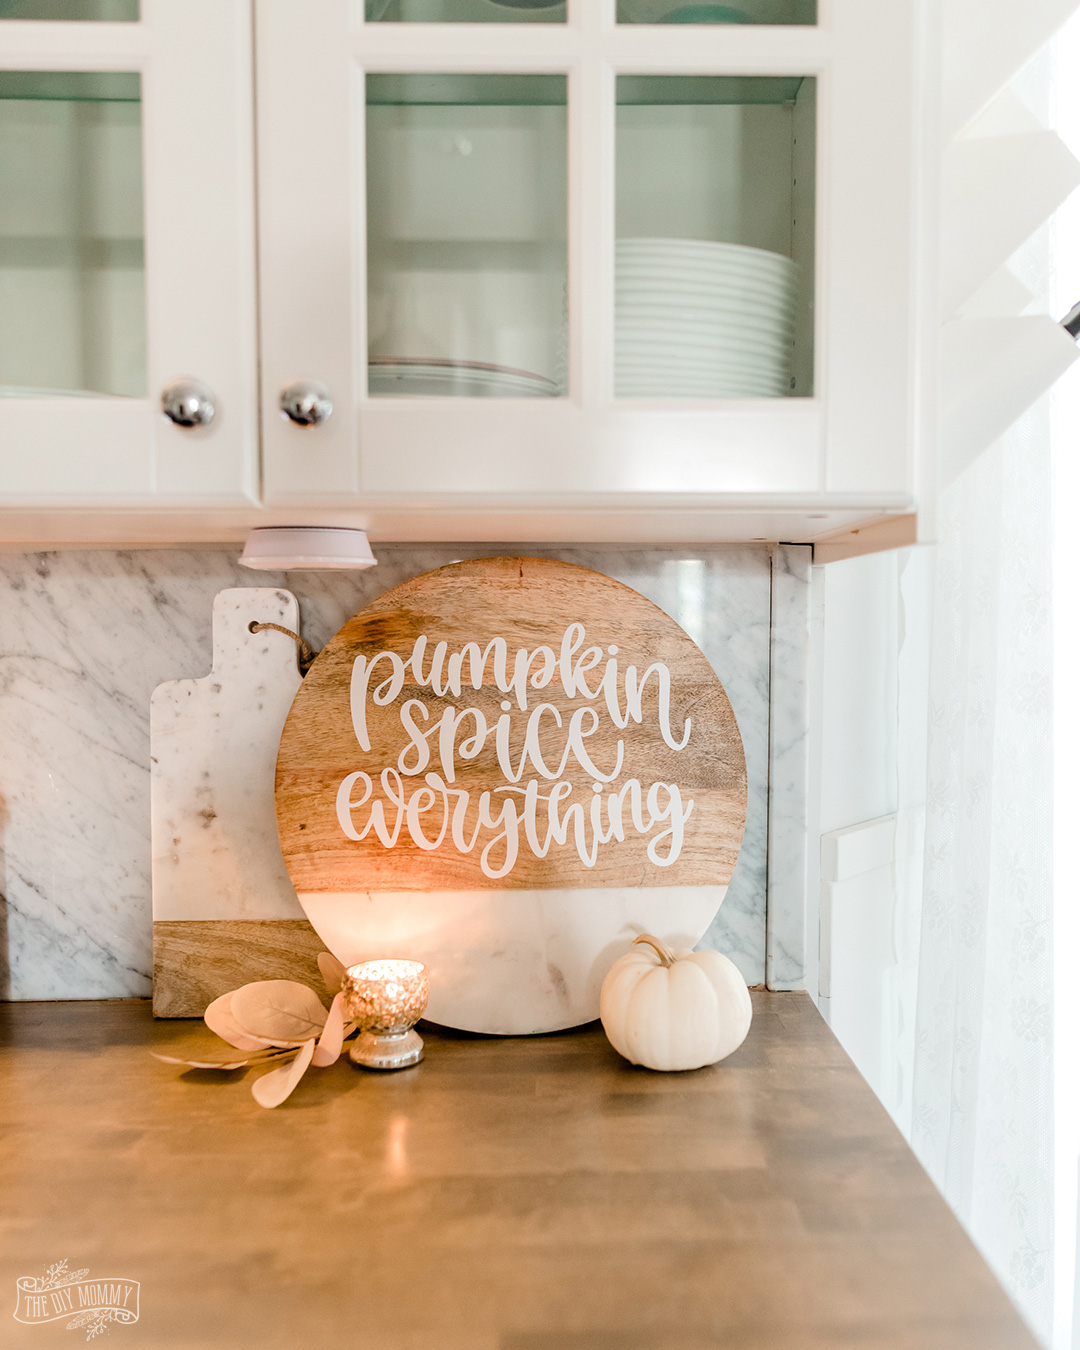 Learn how to make a simple DIY Fall cutting board for autumn decor with a Cricut